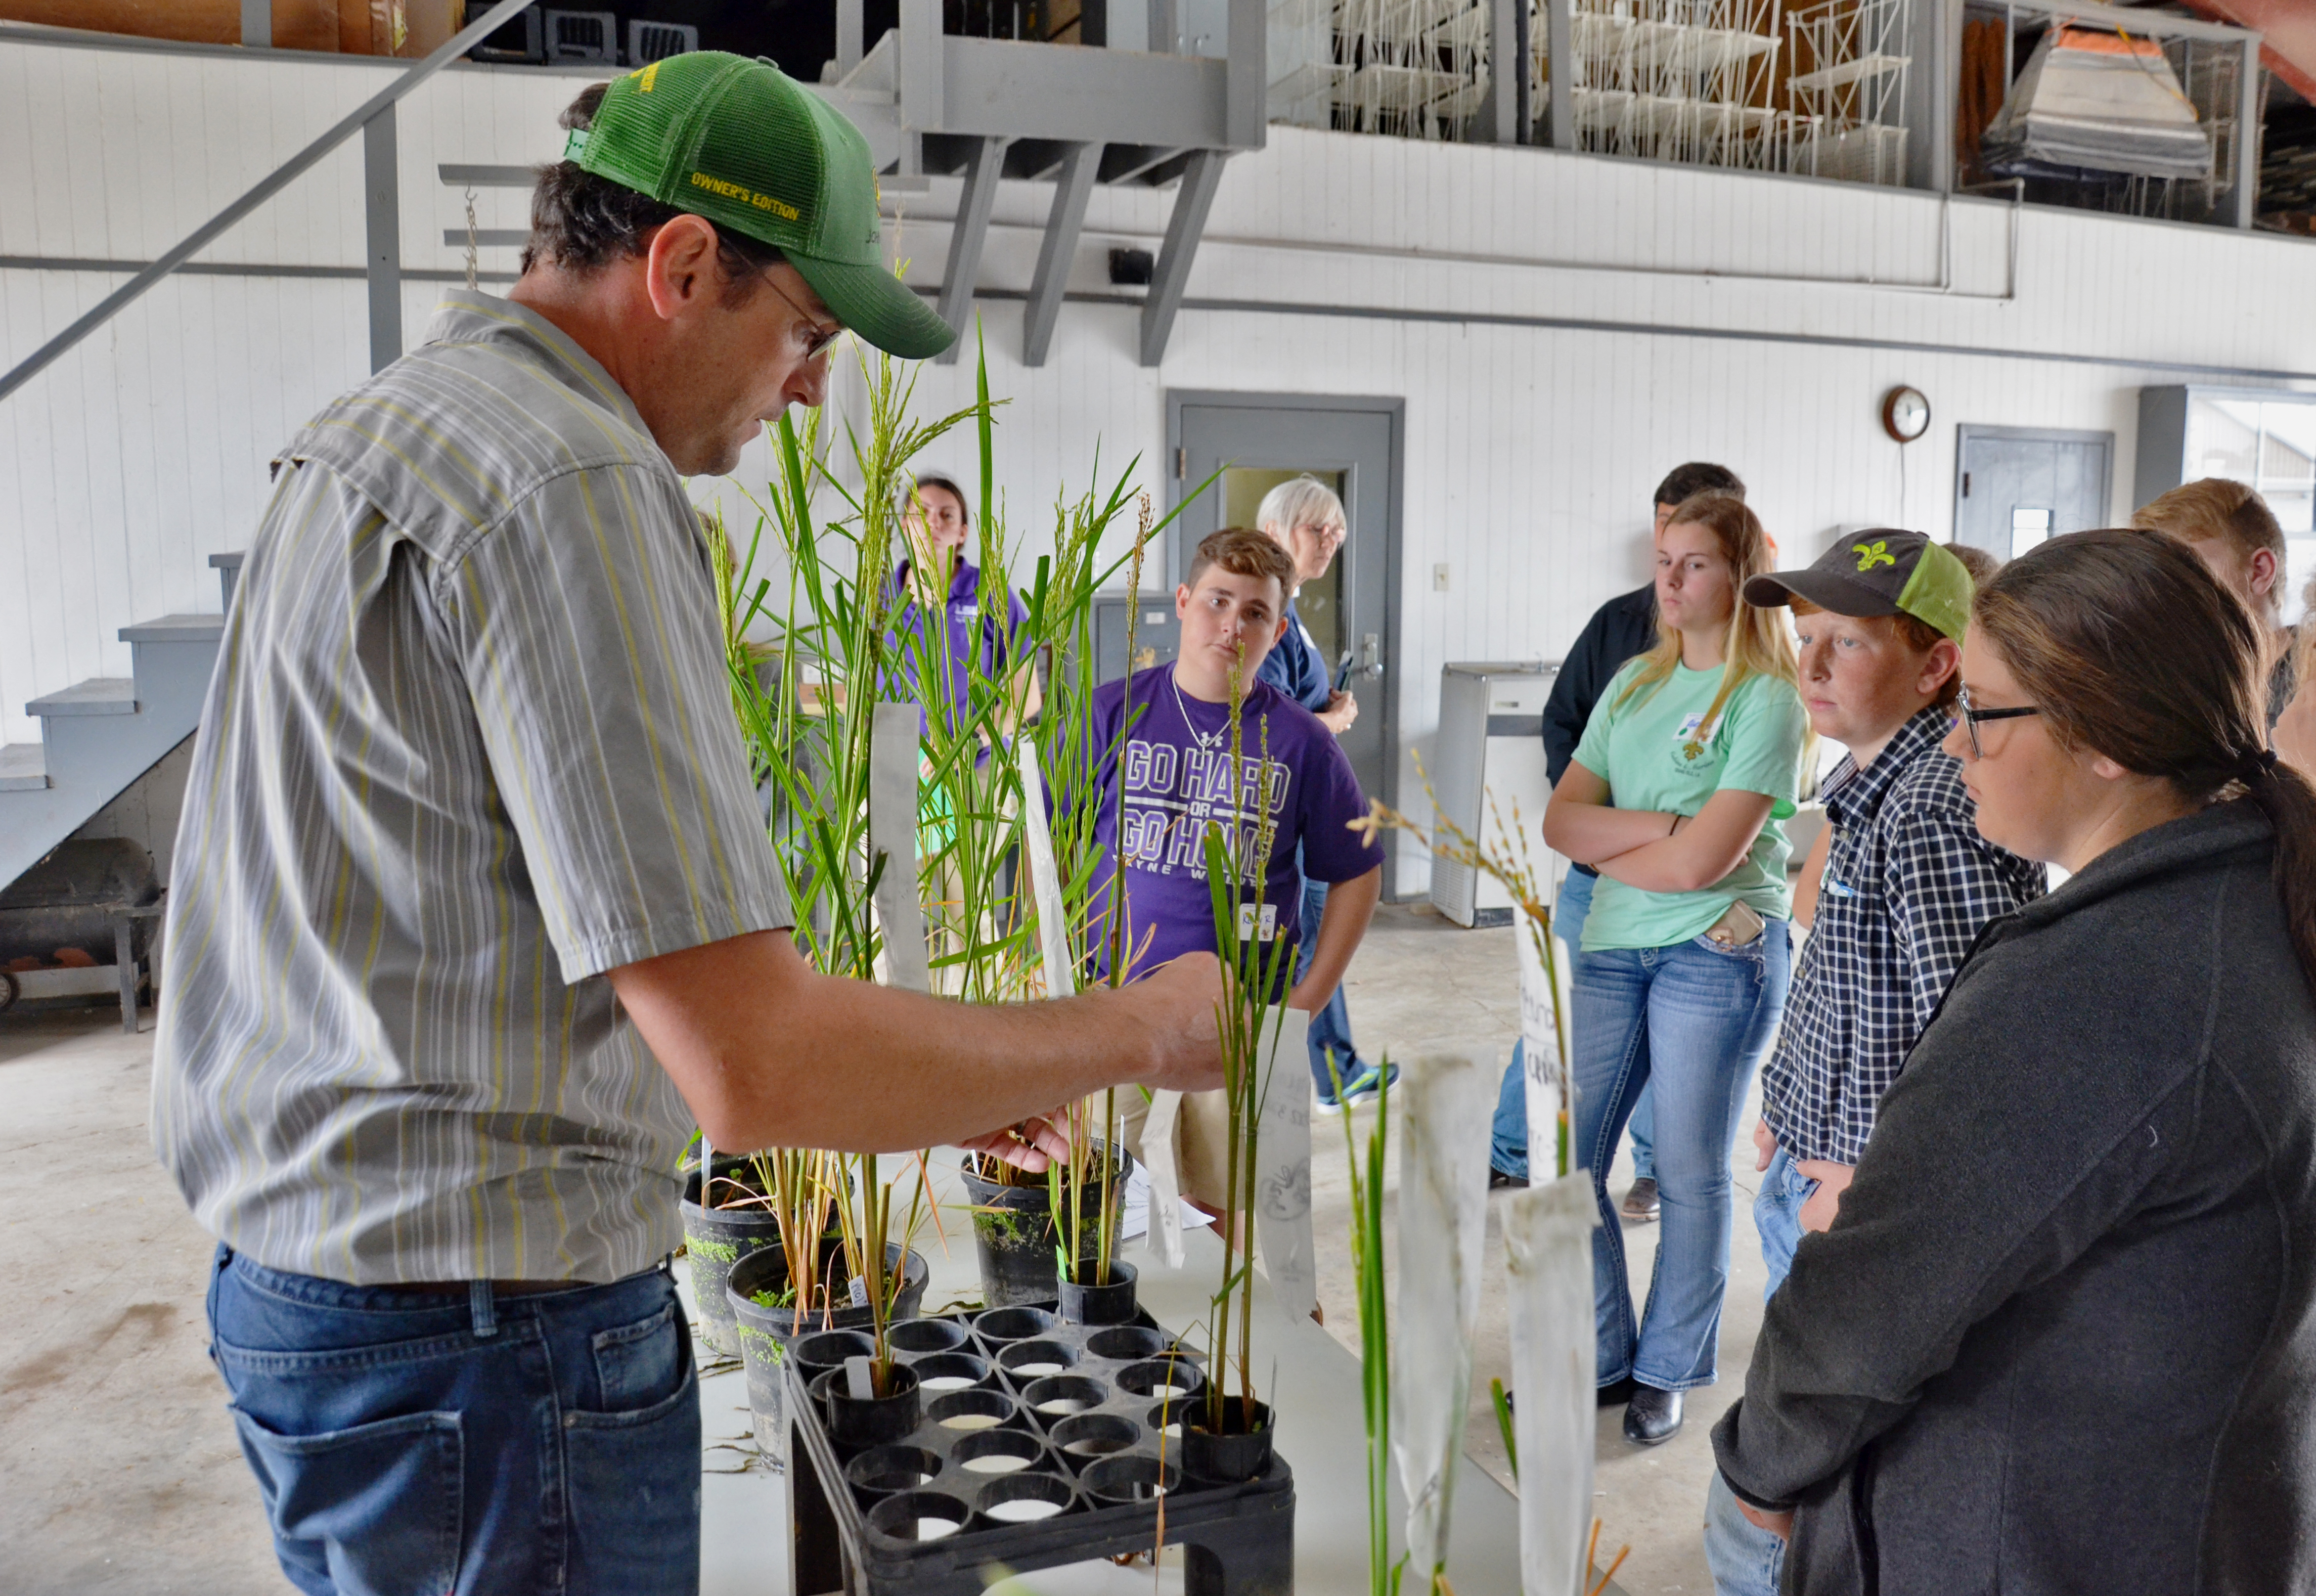 High school students hear about careers in agriculture